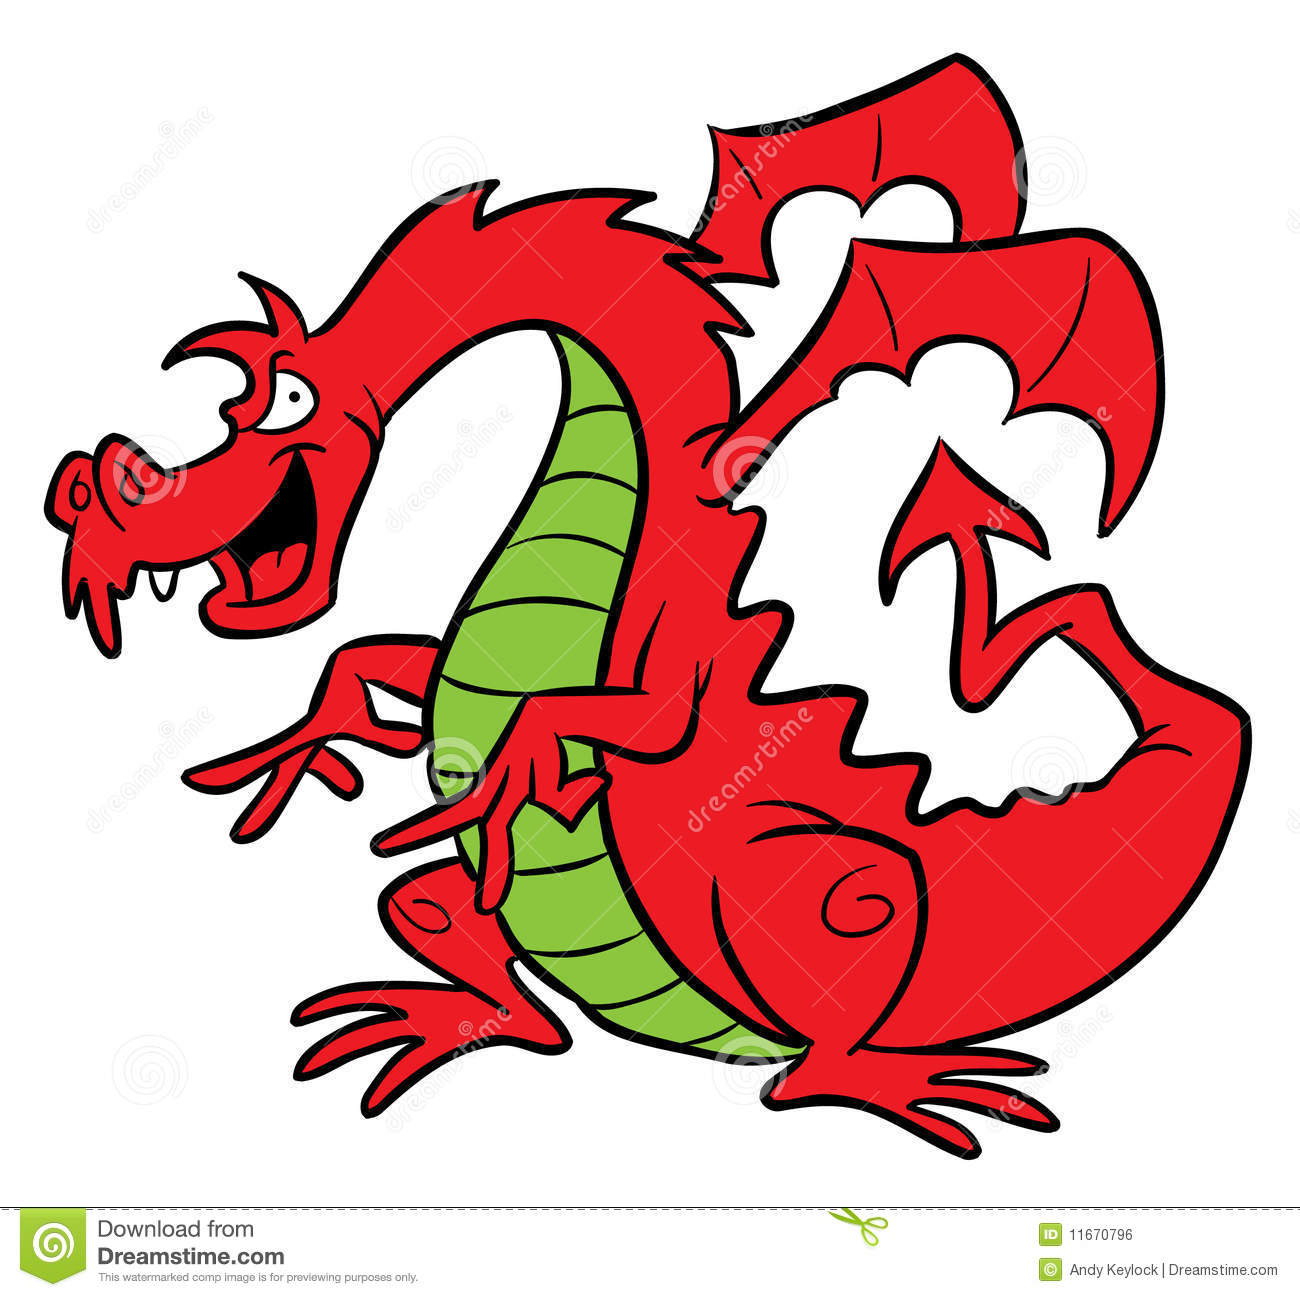 Red Dragon Cartoon Illustration Royalty Free Stock Image - Image ...